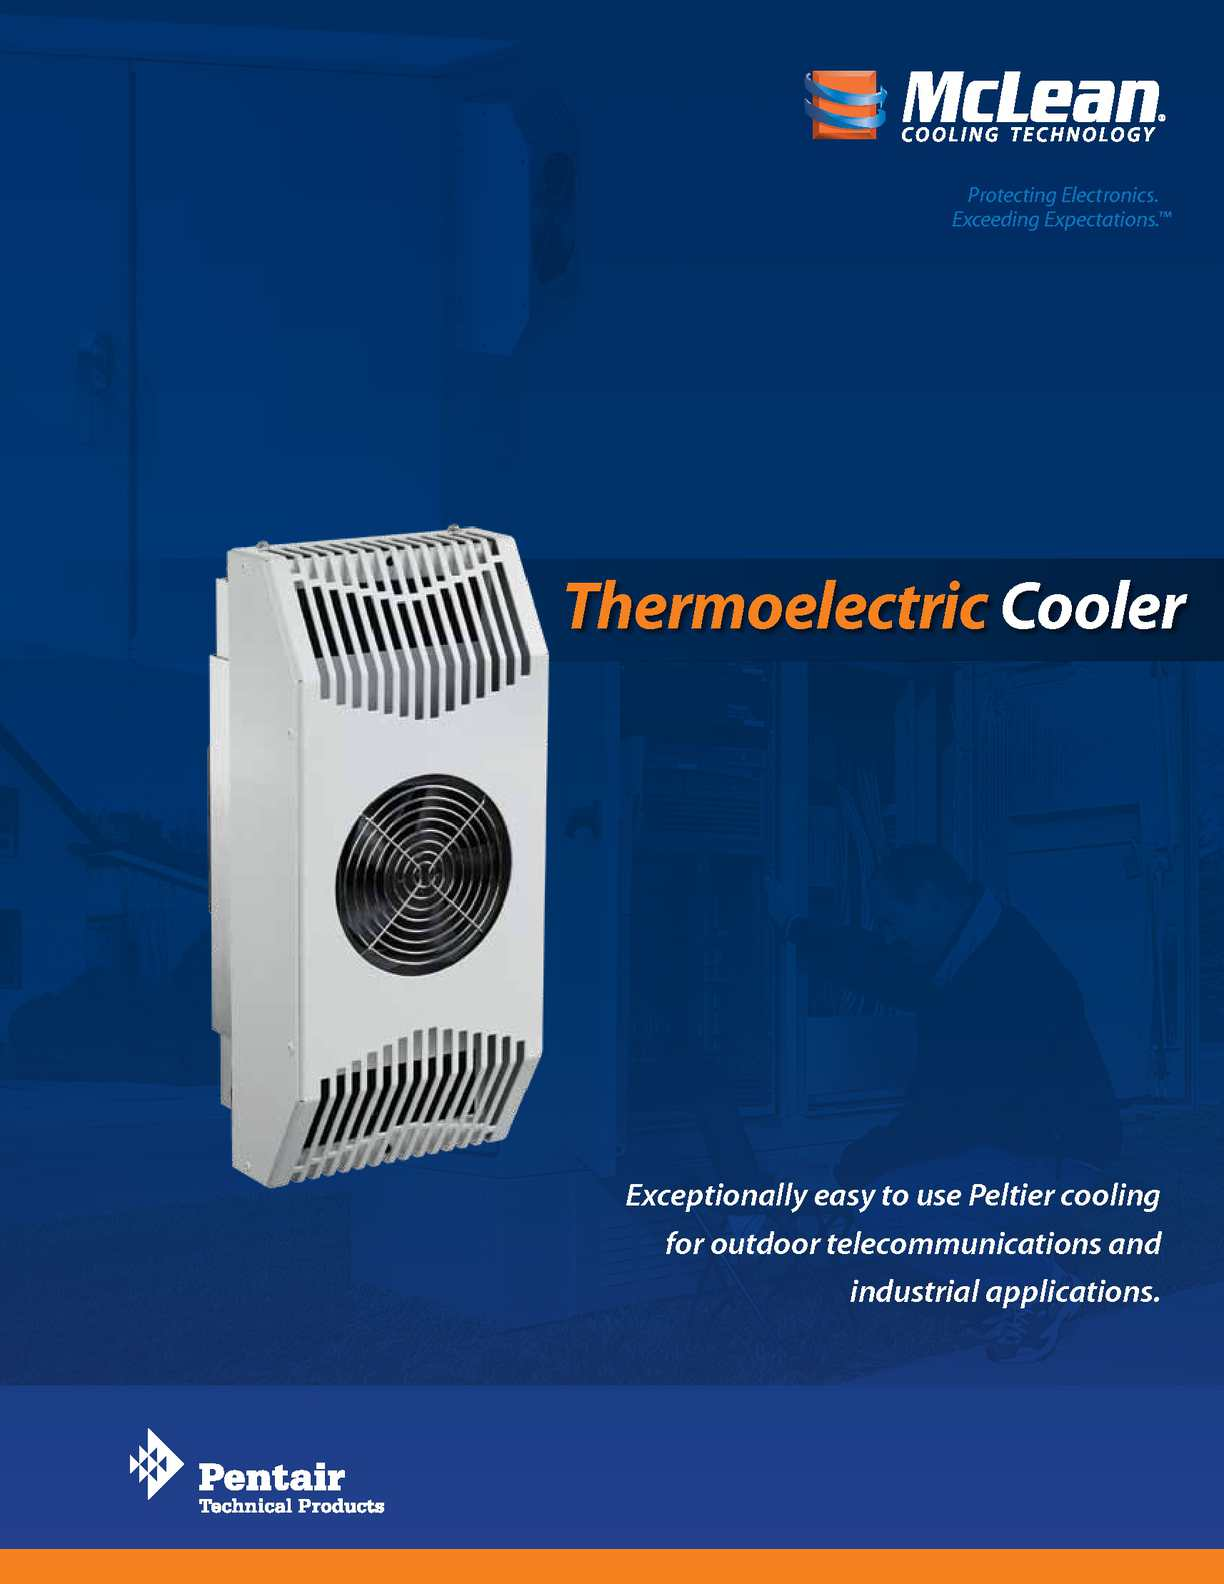 Calameo Mclean Thermoelectric Cooler